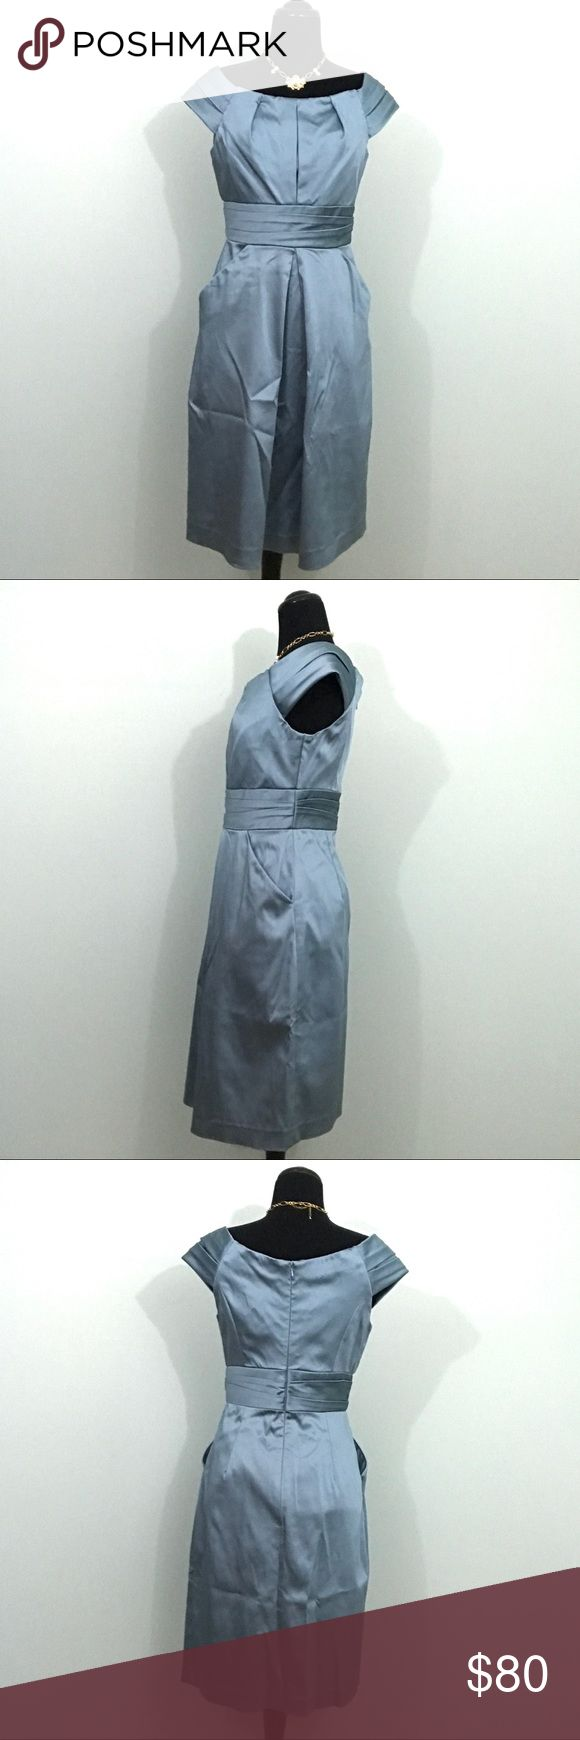 "Kay Unger Dusty Sateen Pleat Waist Formal Dress Kay Unger New York SZ 6 Dusty Blue Sateen Pleat Waist Formal Dress with Pockets  *Excellent Used Condition!  Measurements: 32"" Bust 28"" Waist 38"" Length Kay Unger Dresses"